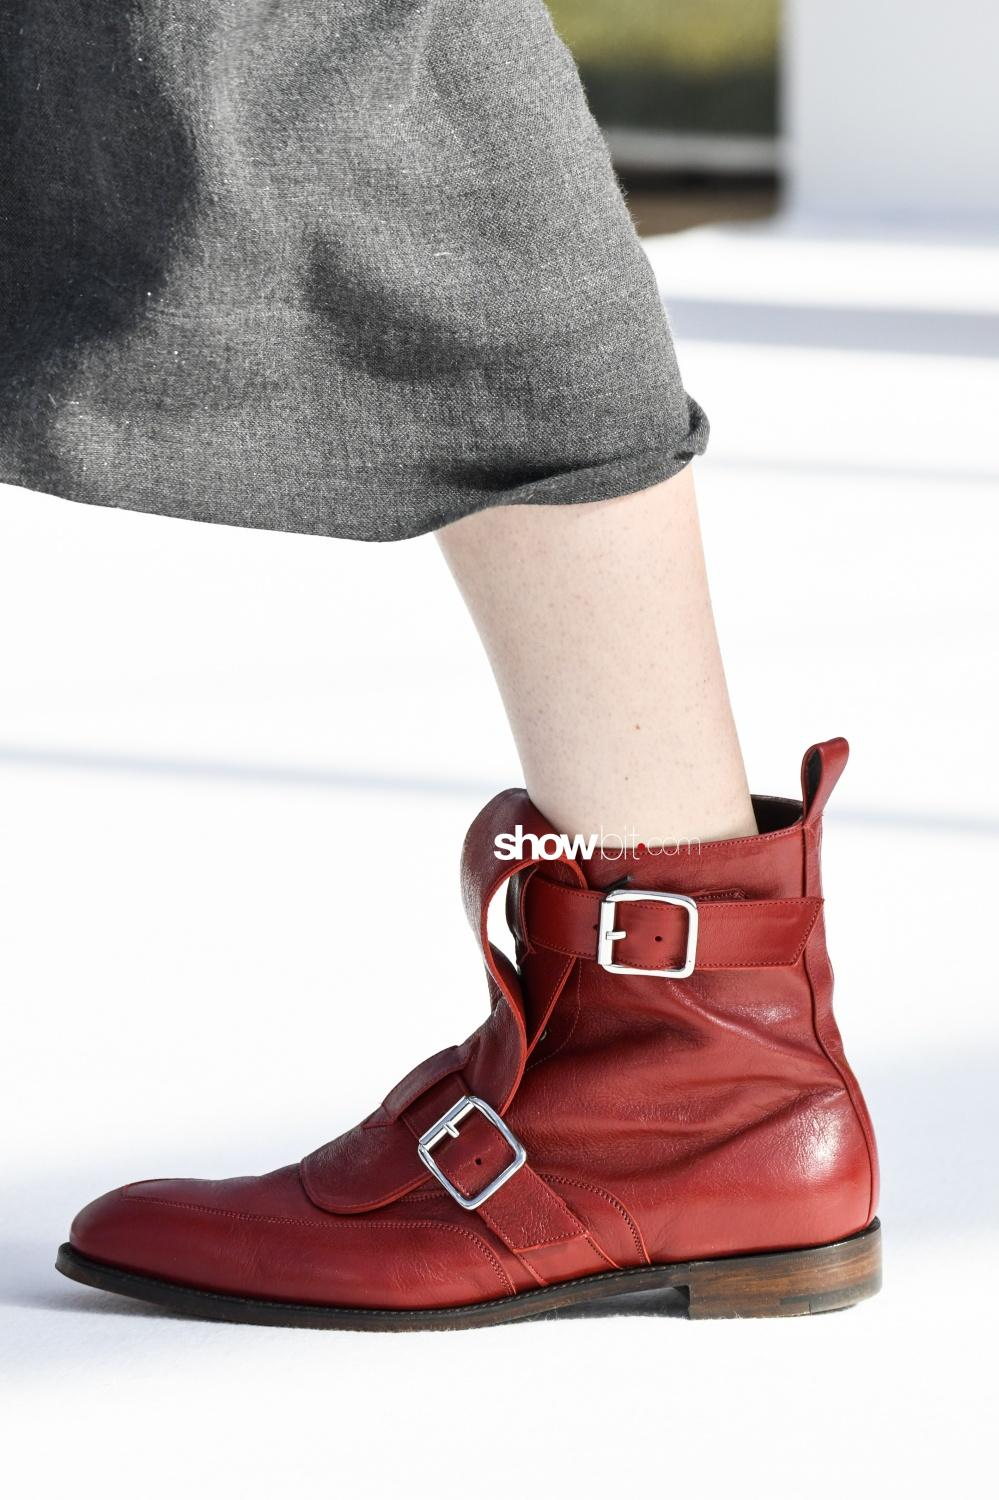 Vivienne Westwood close-up shoes Woman Man Fall Winter 2018 Paris